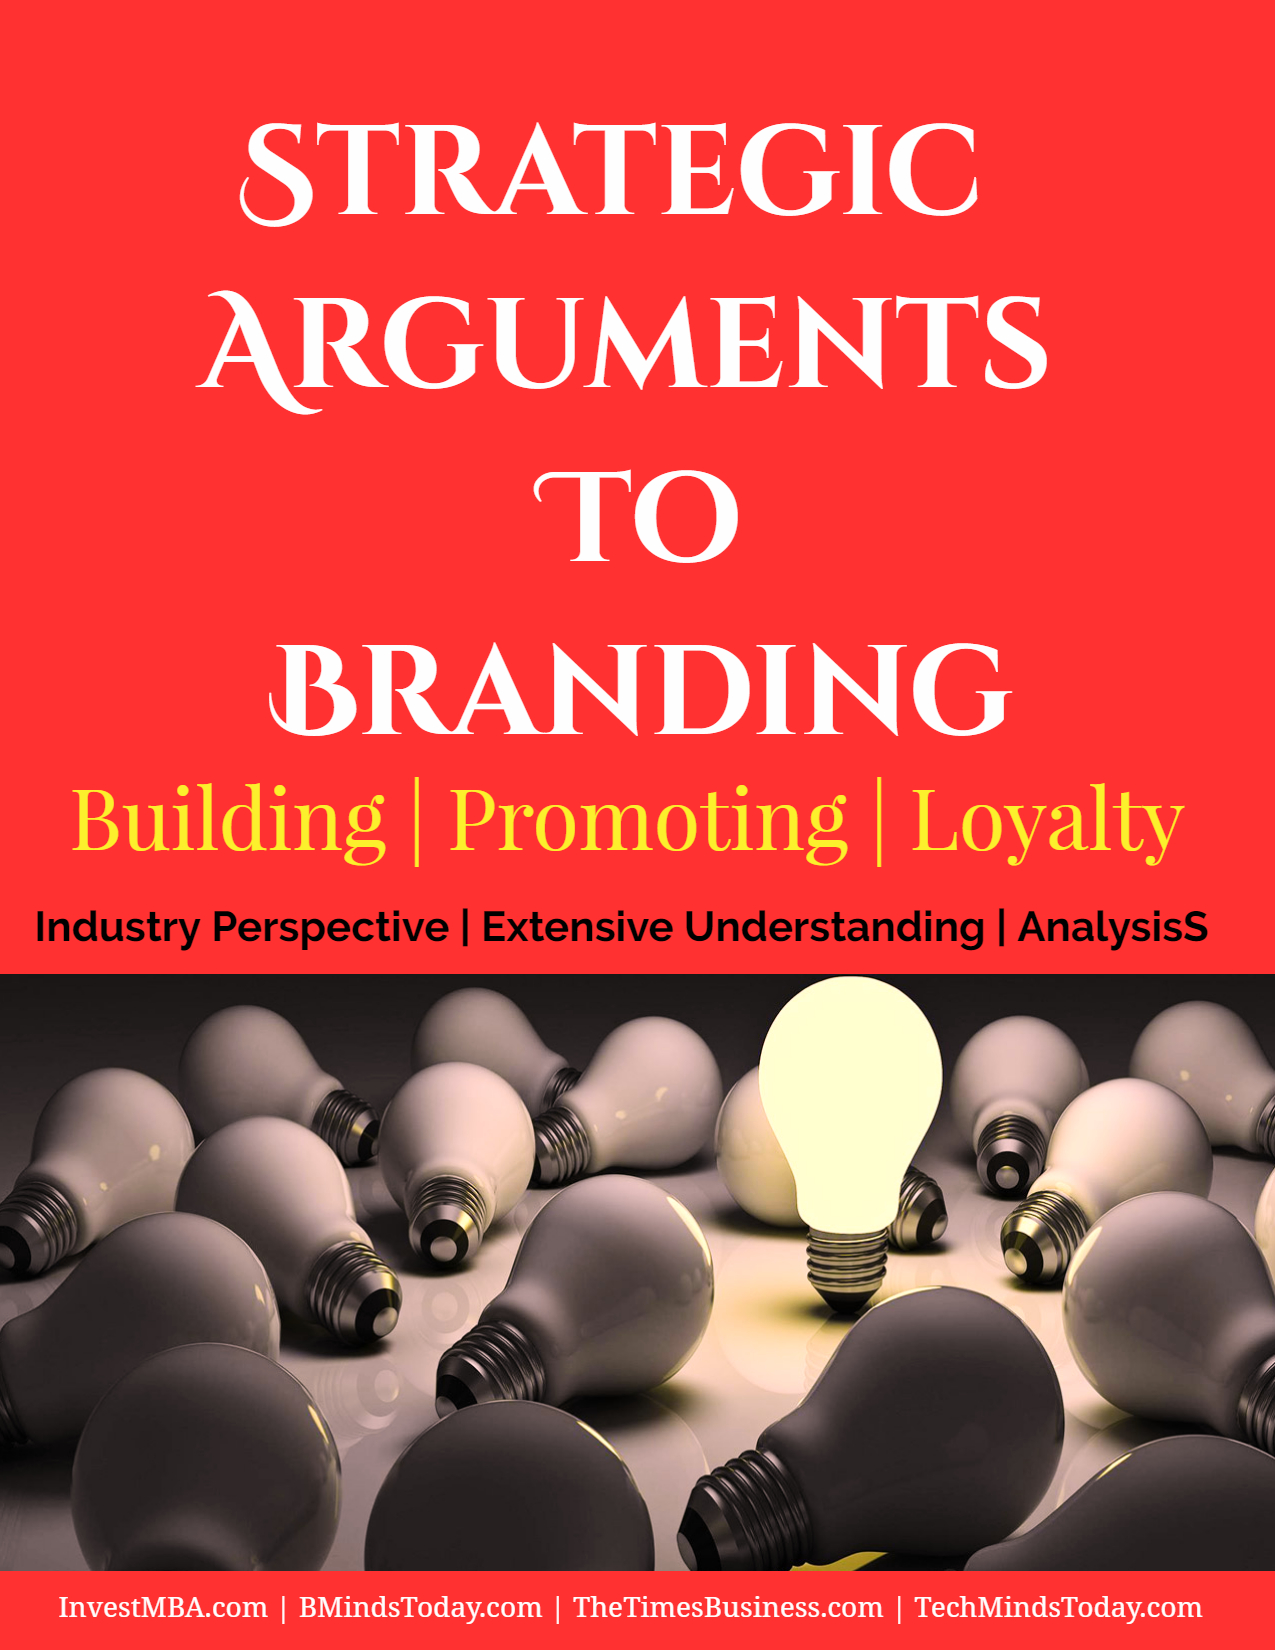 Strategic Arguments To Branding | Building | Promoting | Loyalty branding FOUR Strategic Arguments To Branding | Building | Promoting | Loyalty Strategic Arguments To Branding Building Promoting Loyalty